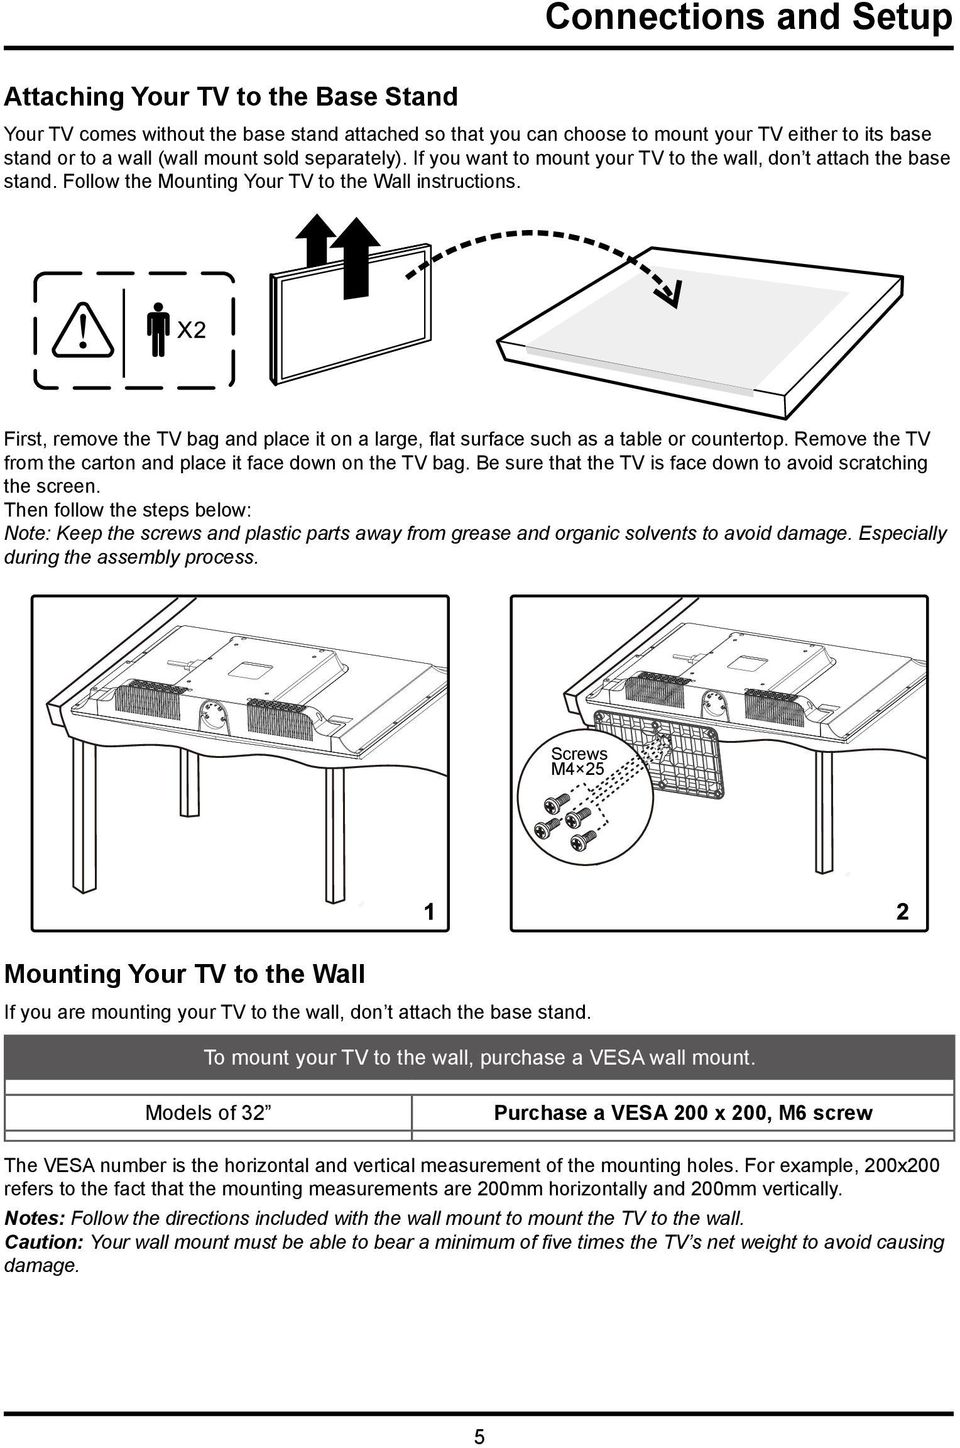 First, remove the TV bag and place it on a large, flat surface such as a table or countertop. Remove the TV from the carton and place it face down on the TV bag.